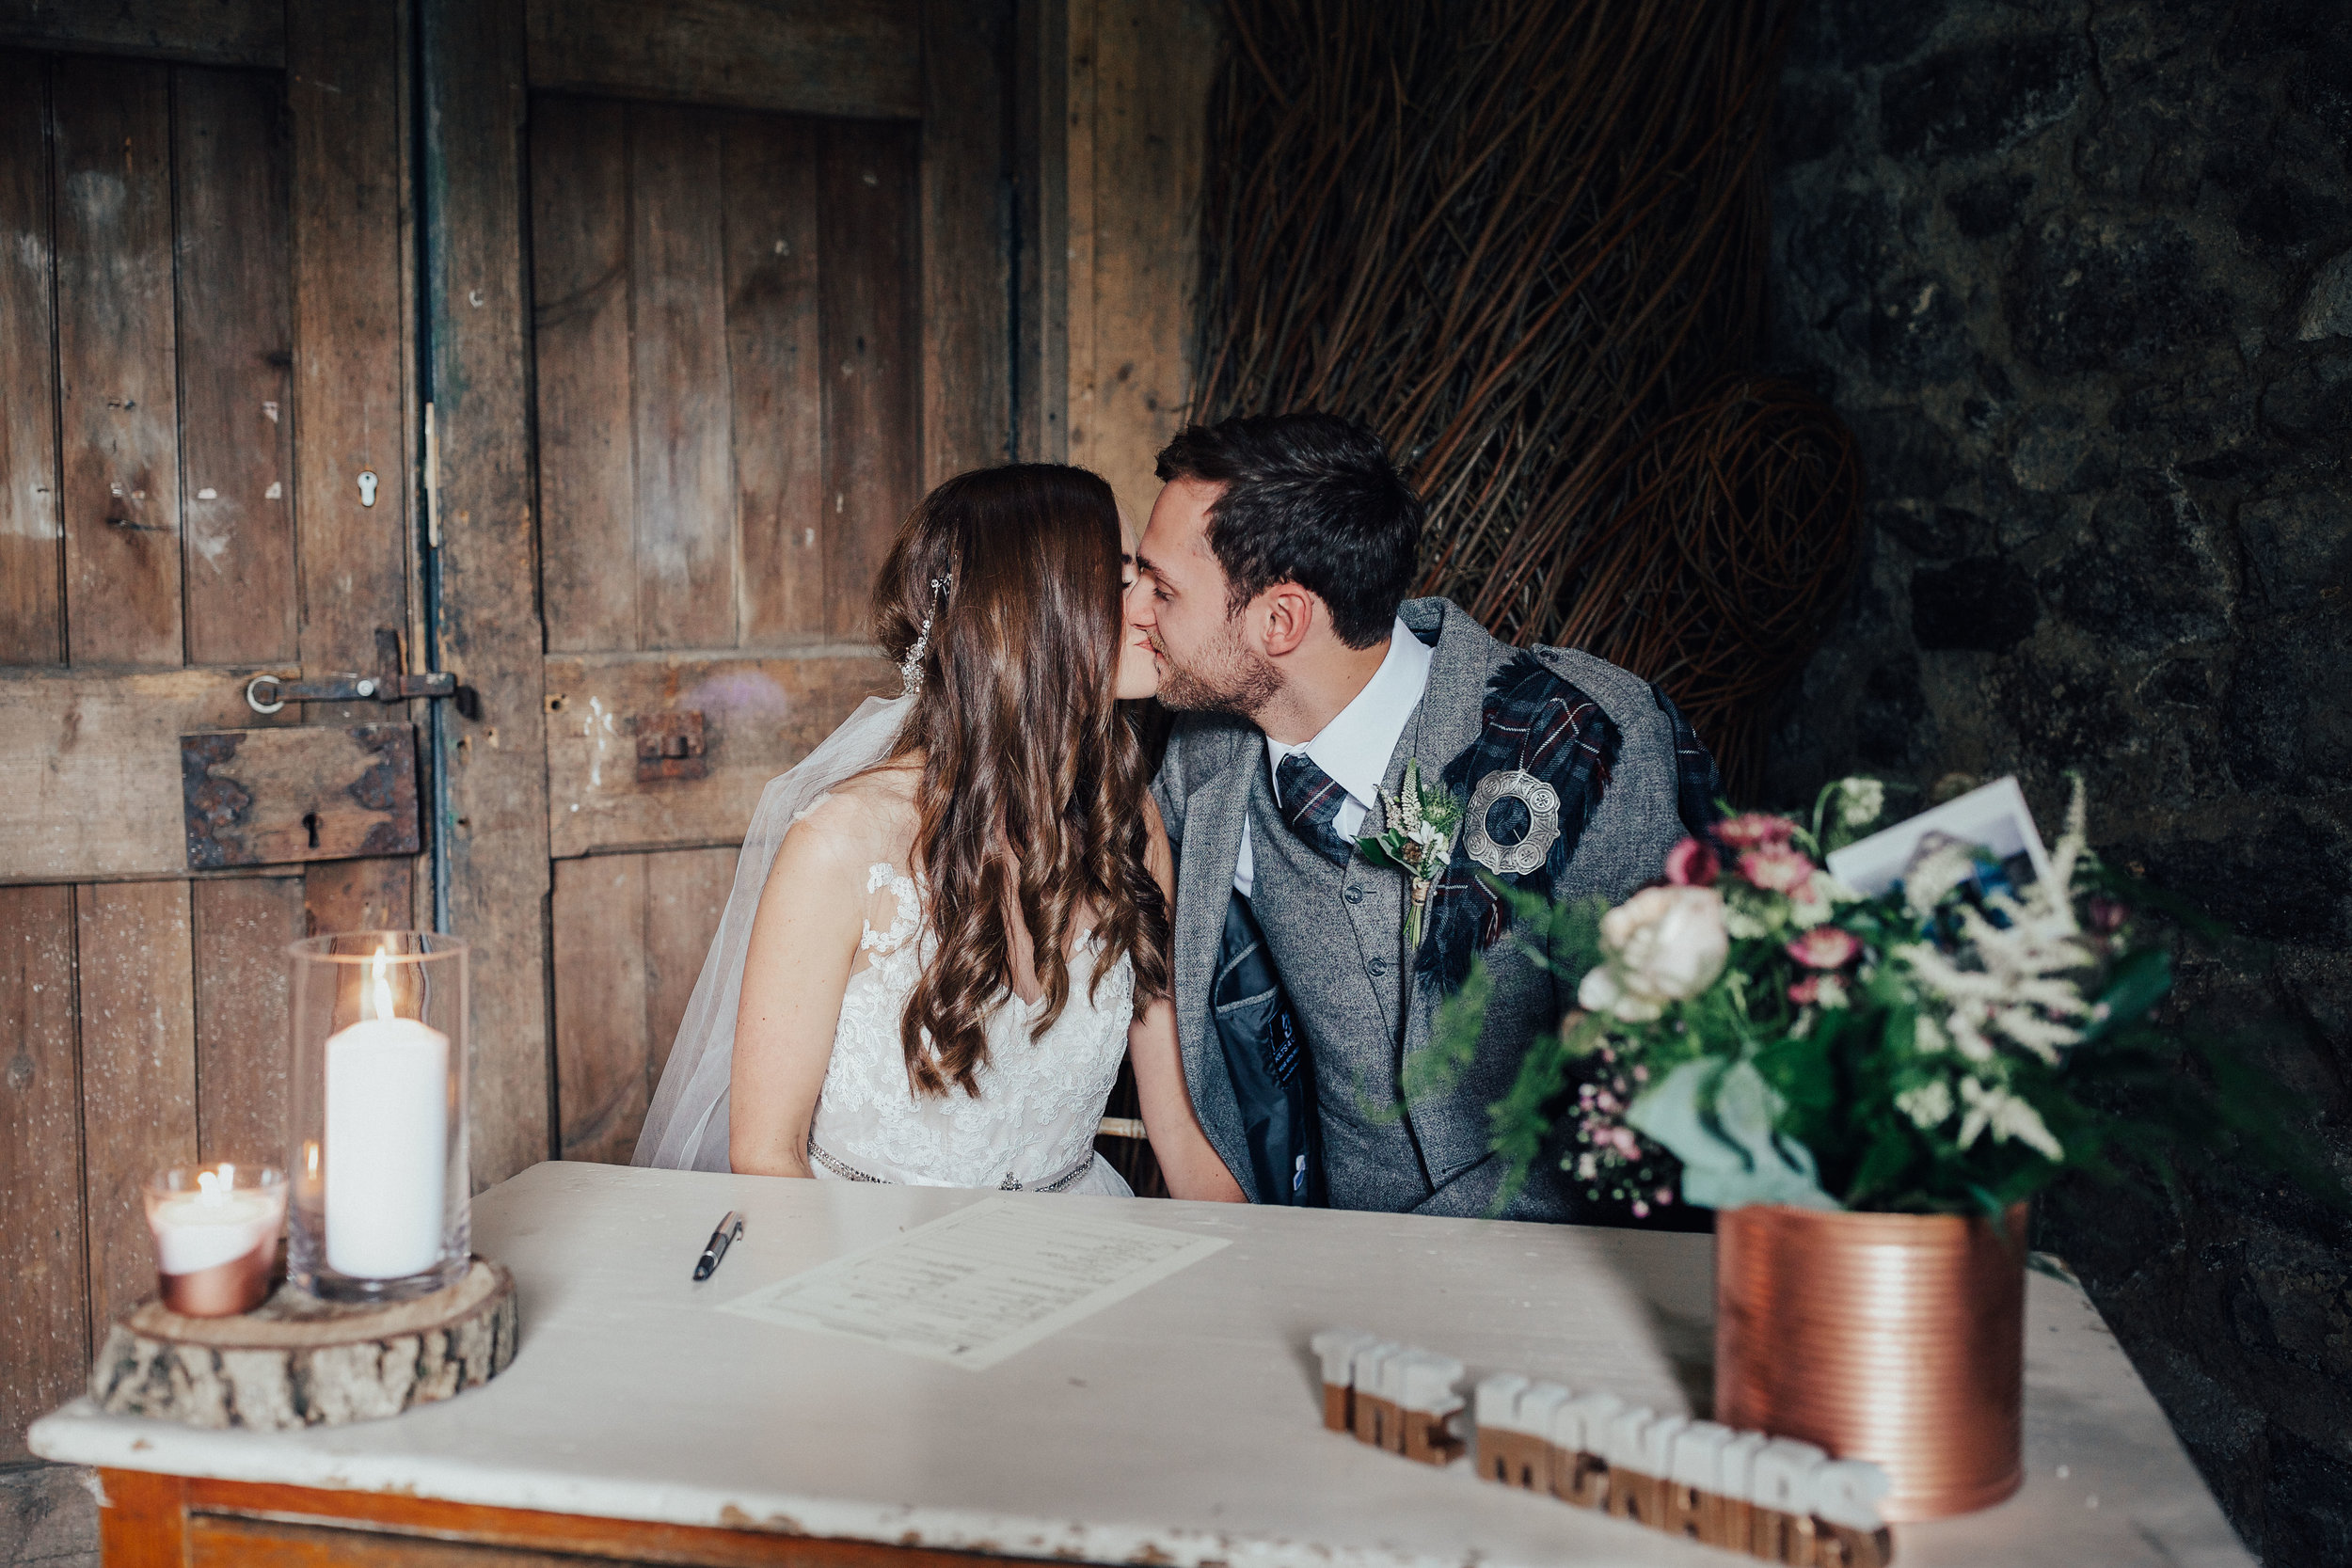 BYRE_AT_INCHYRA_WEDDING_PHOTOGRAPHER_PJ_PHILLIPS_PHOTOGRAPHY_KAYLEIGH_ANDREW_92.jpg